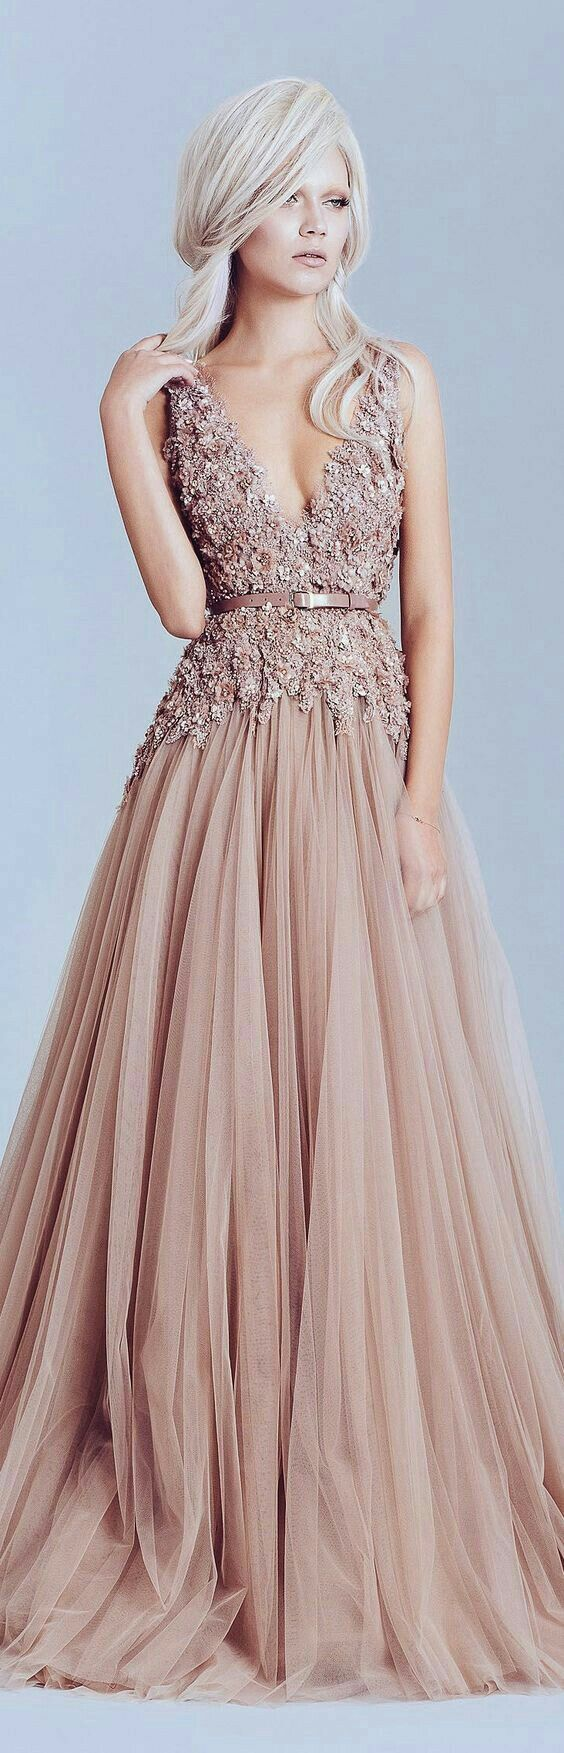 Pin by thandeka xaba on fashion pinterest dresses prom dresses